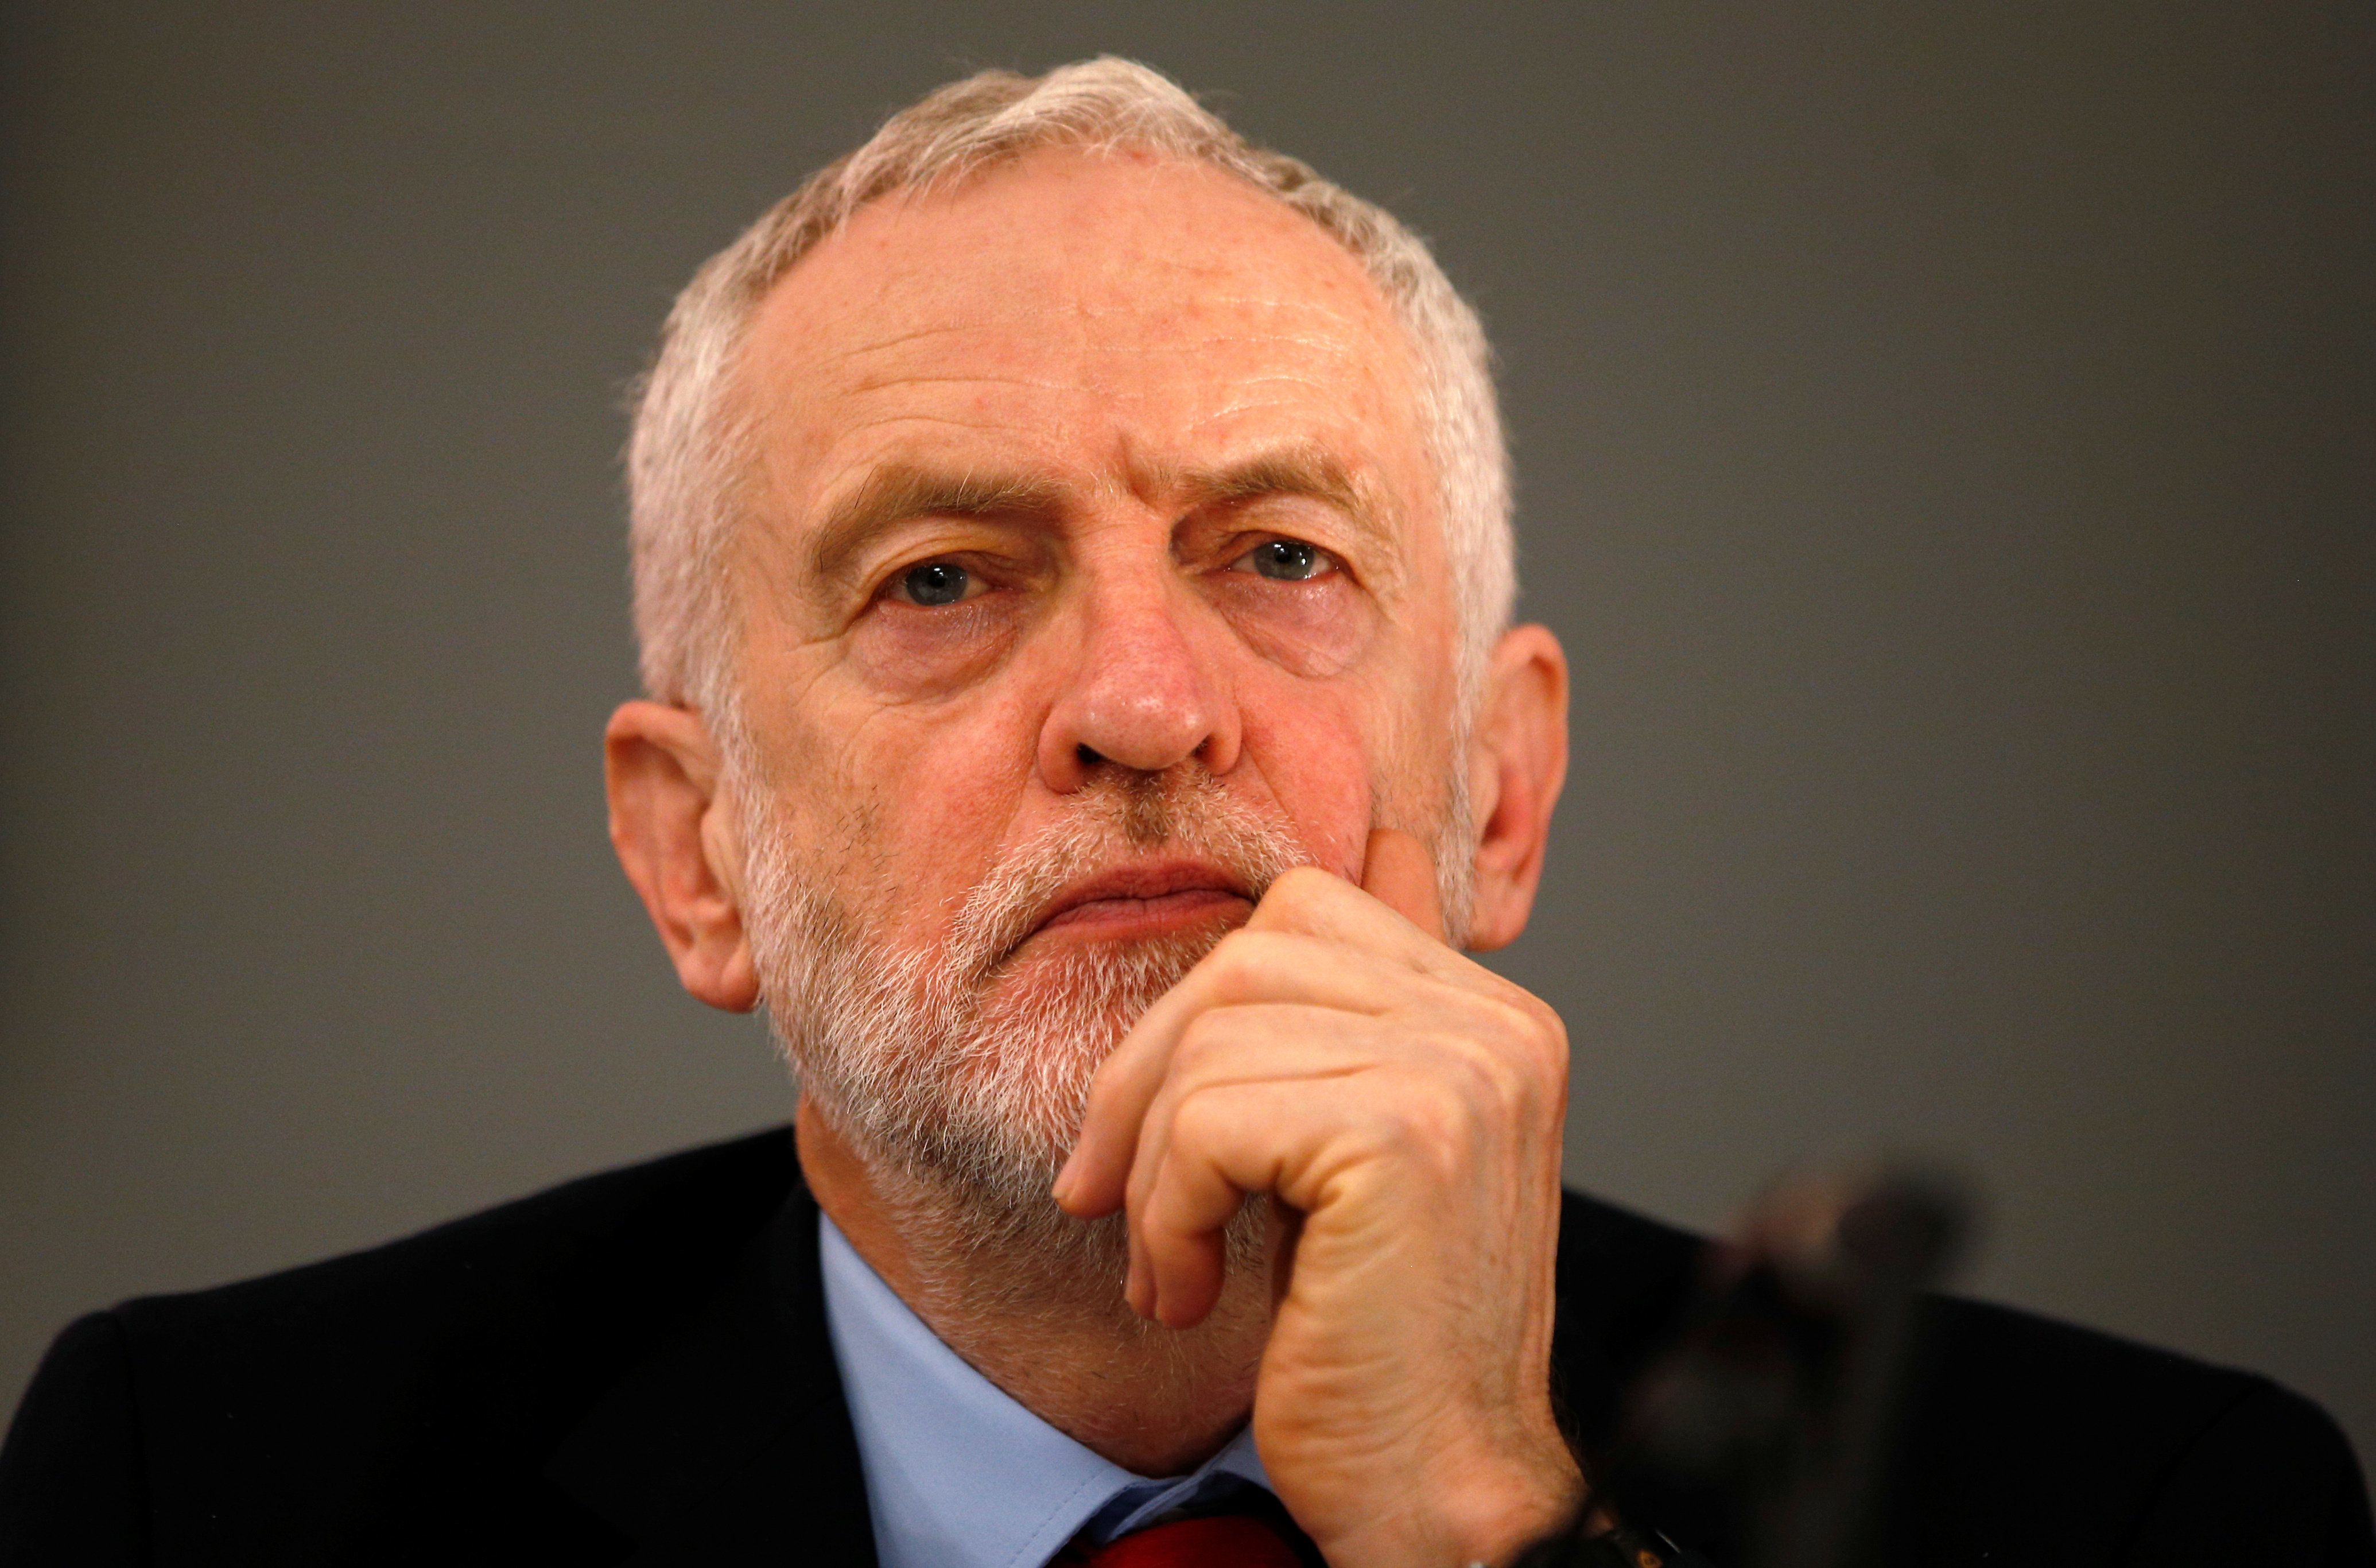 Jeremy Corbyn will meet Jewish leaders for talks about